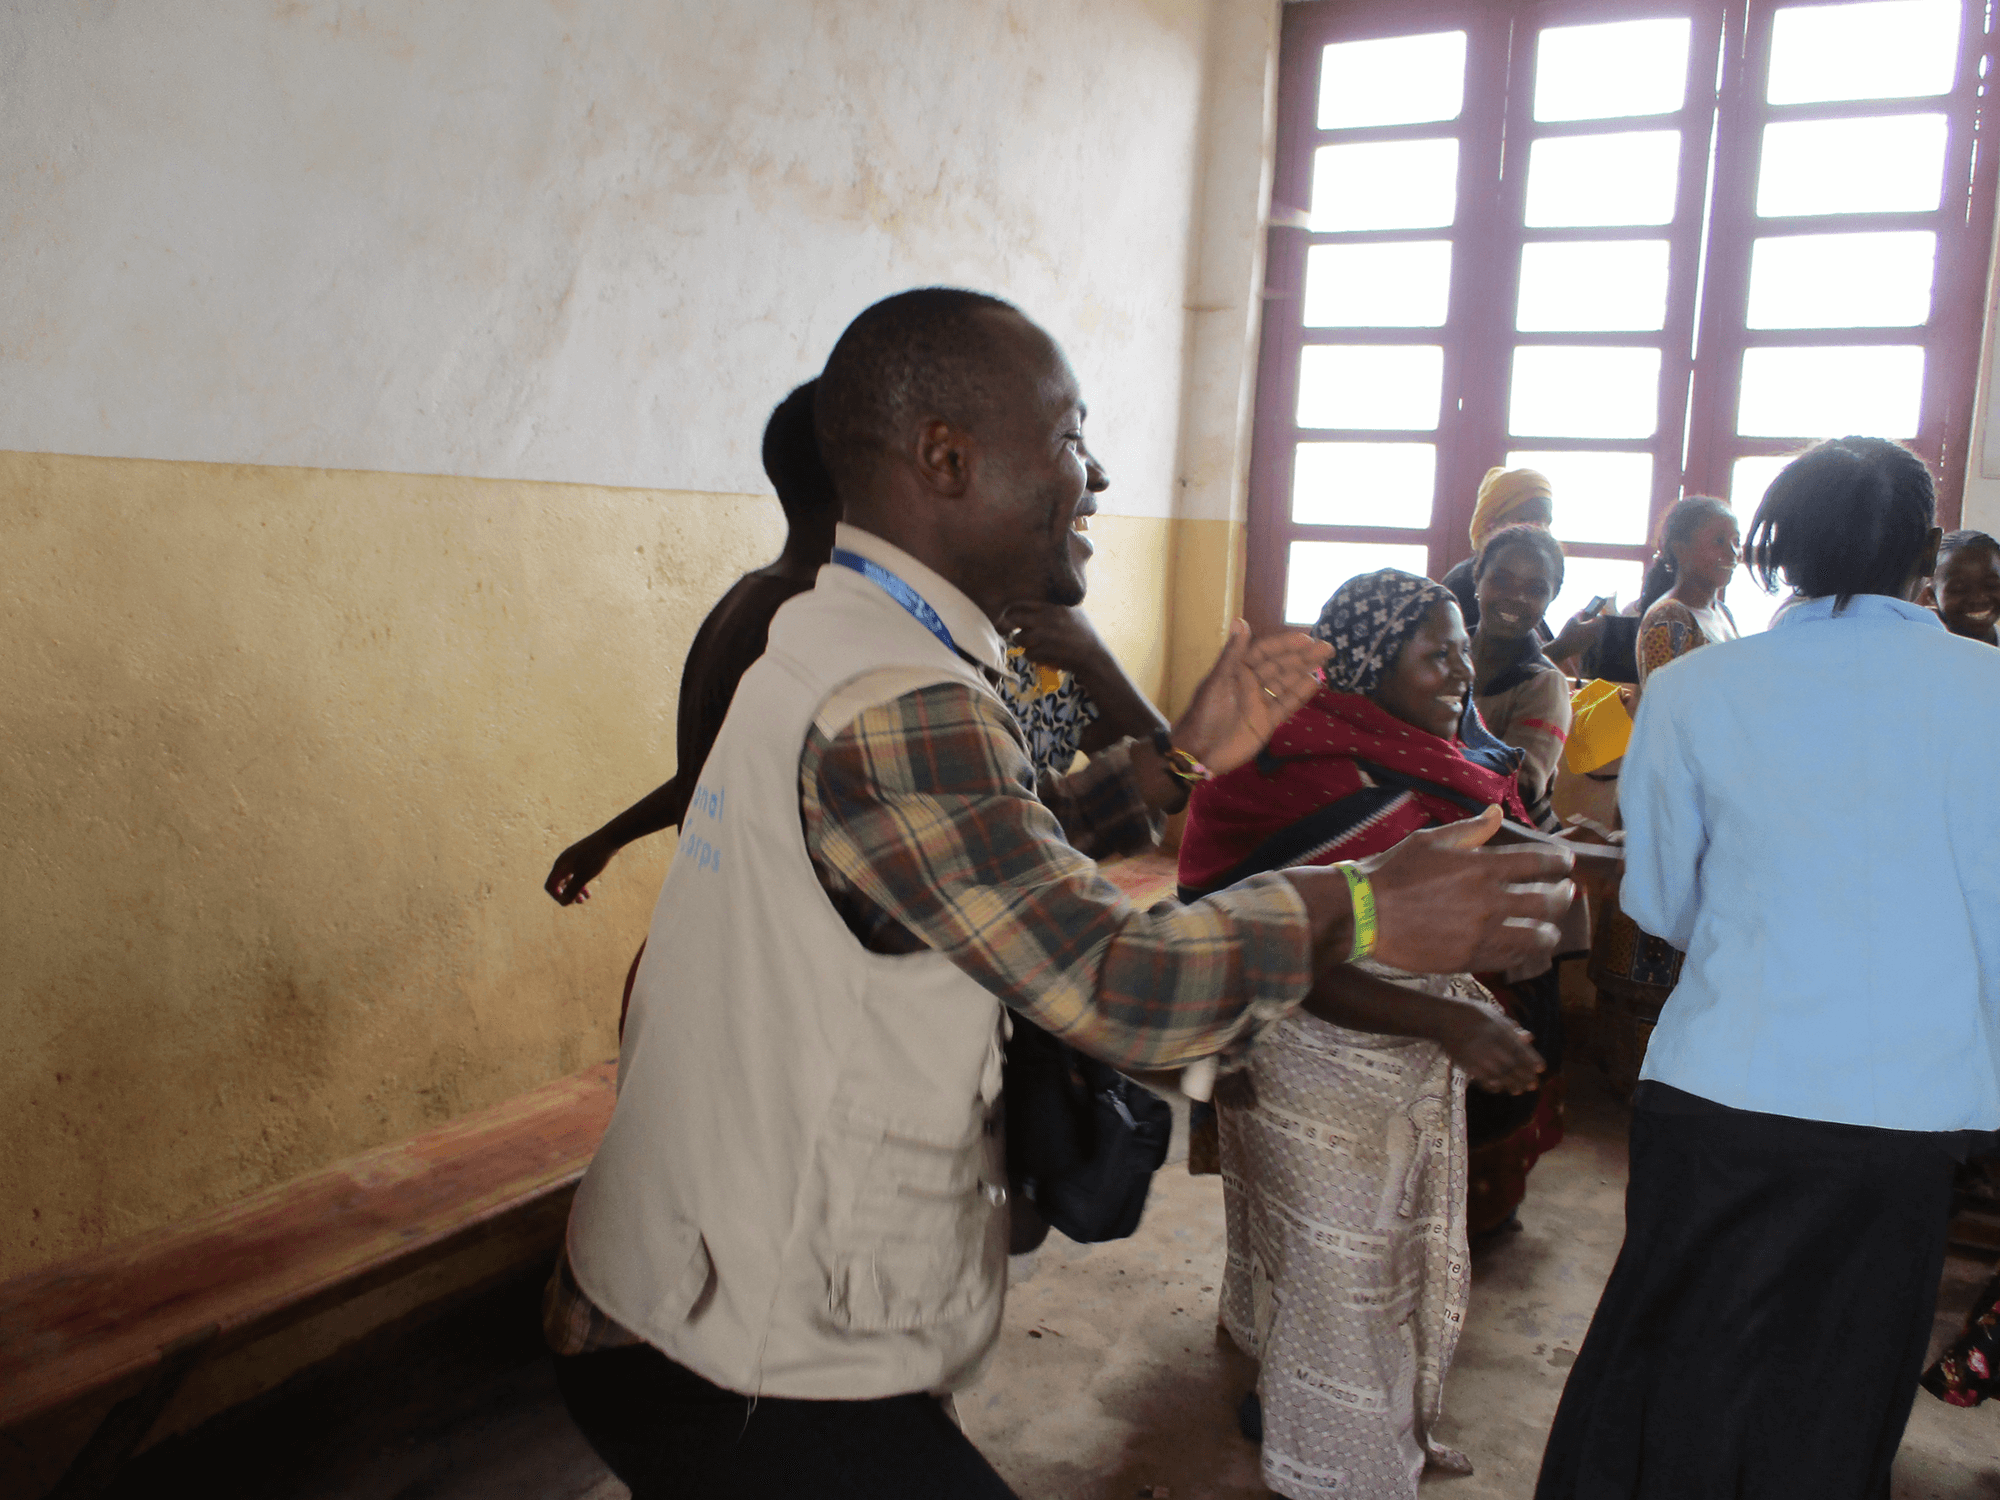 """Mussa celebrates with women in International Medical Corps' """"women's safe space,"""" which enables women at risk of gender-based violence to come together, receive support and learn new skills in North Kivu province, DRC."""